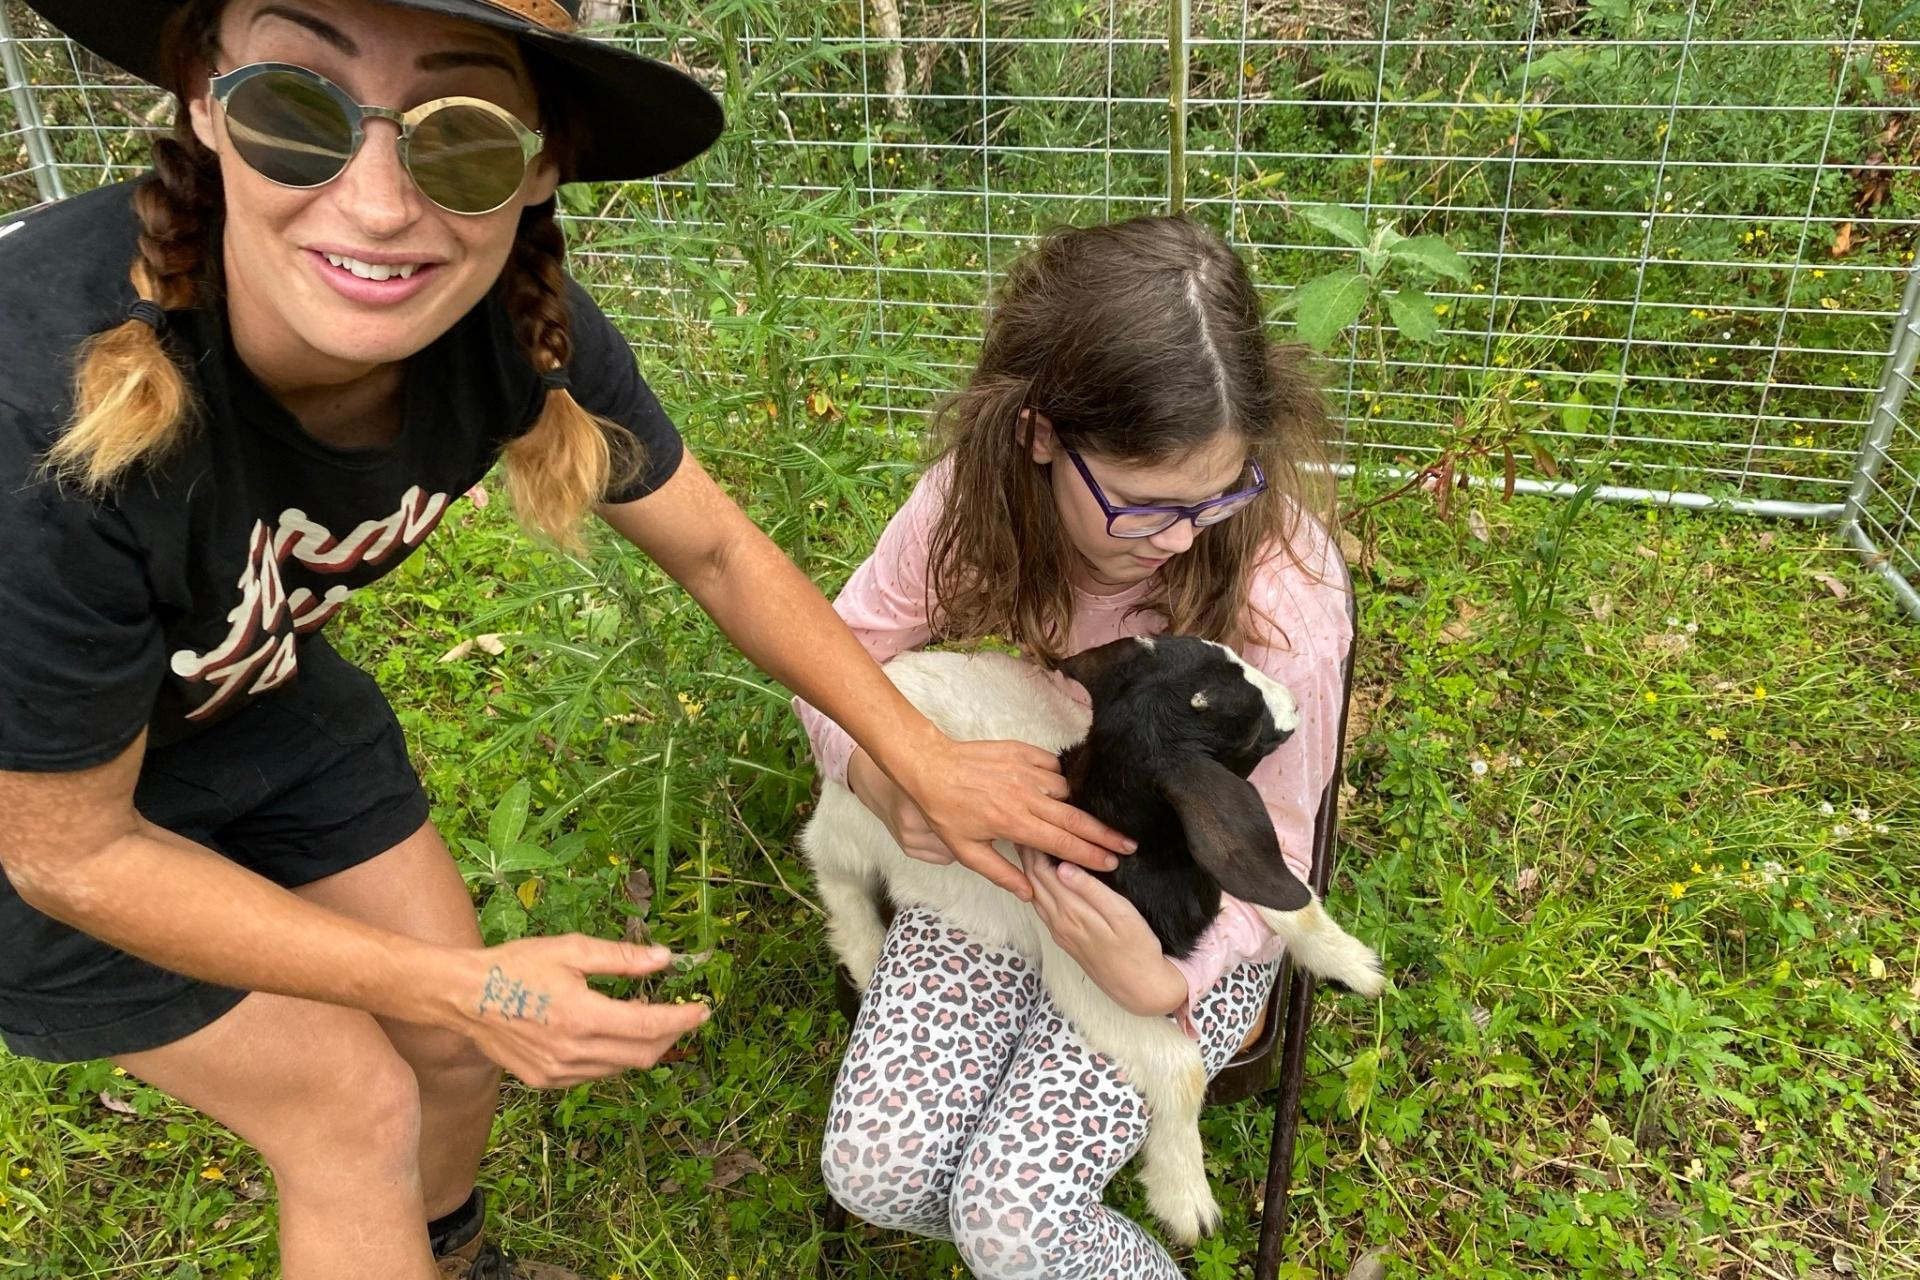 GROW Kids Farm Tour - Hold the Baby Goat.